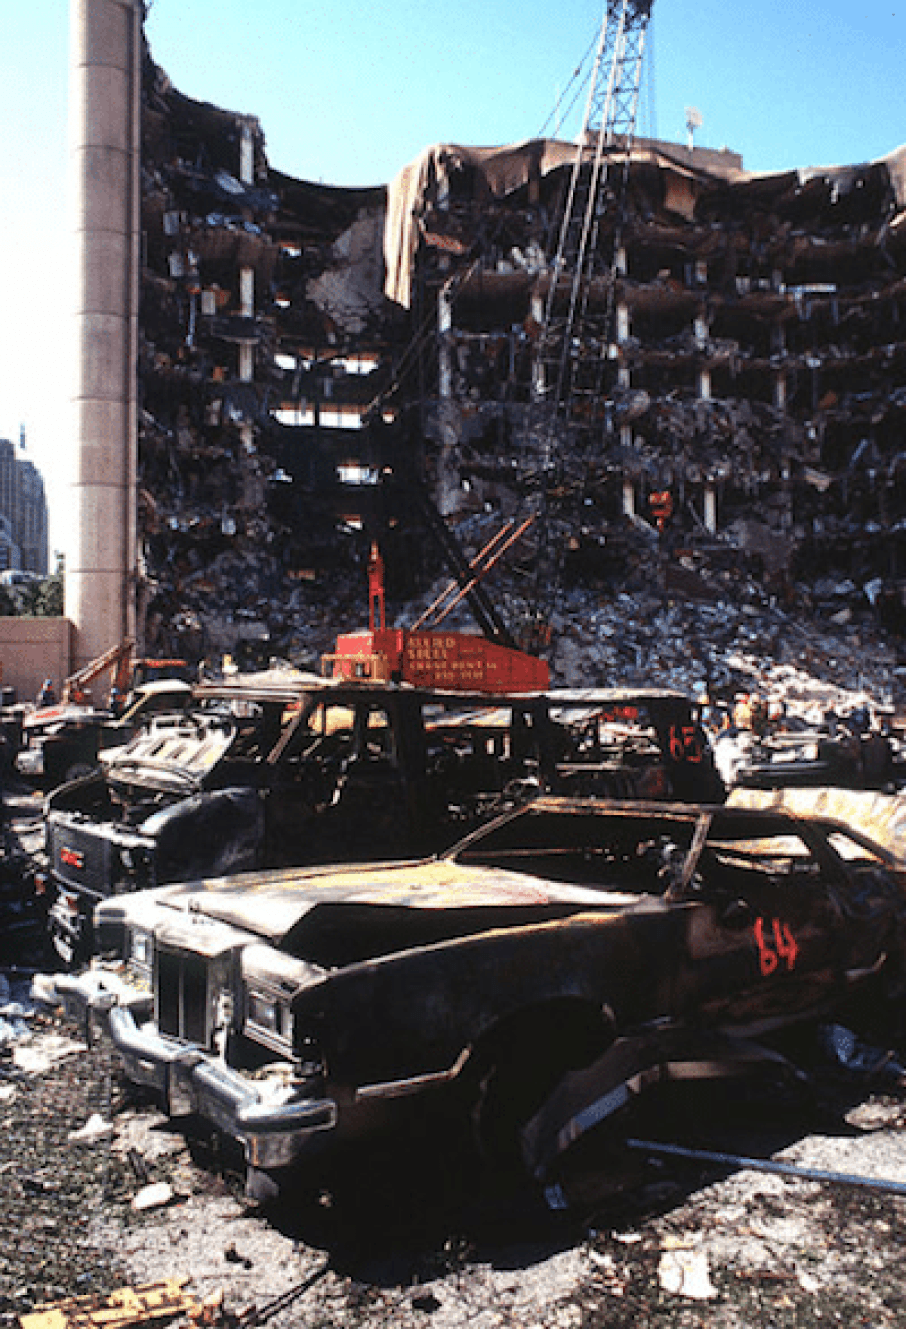 the Murrah Building, two days after the explosion.